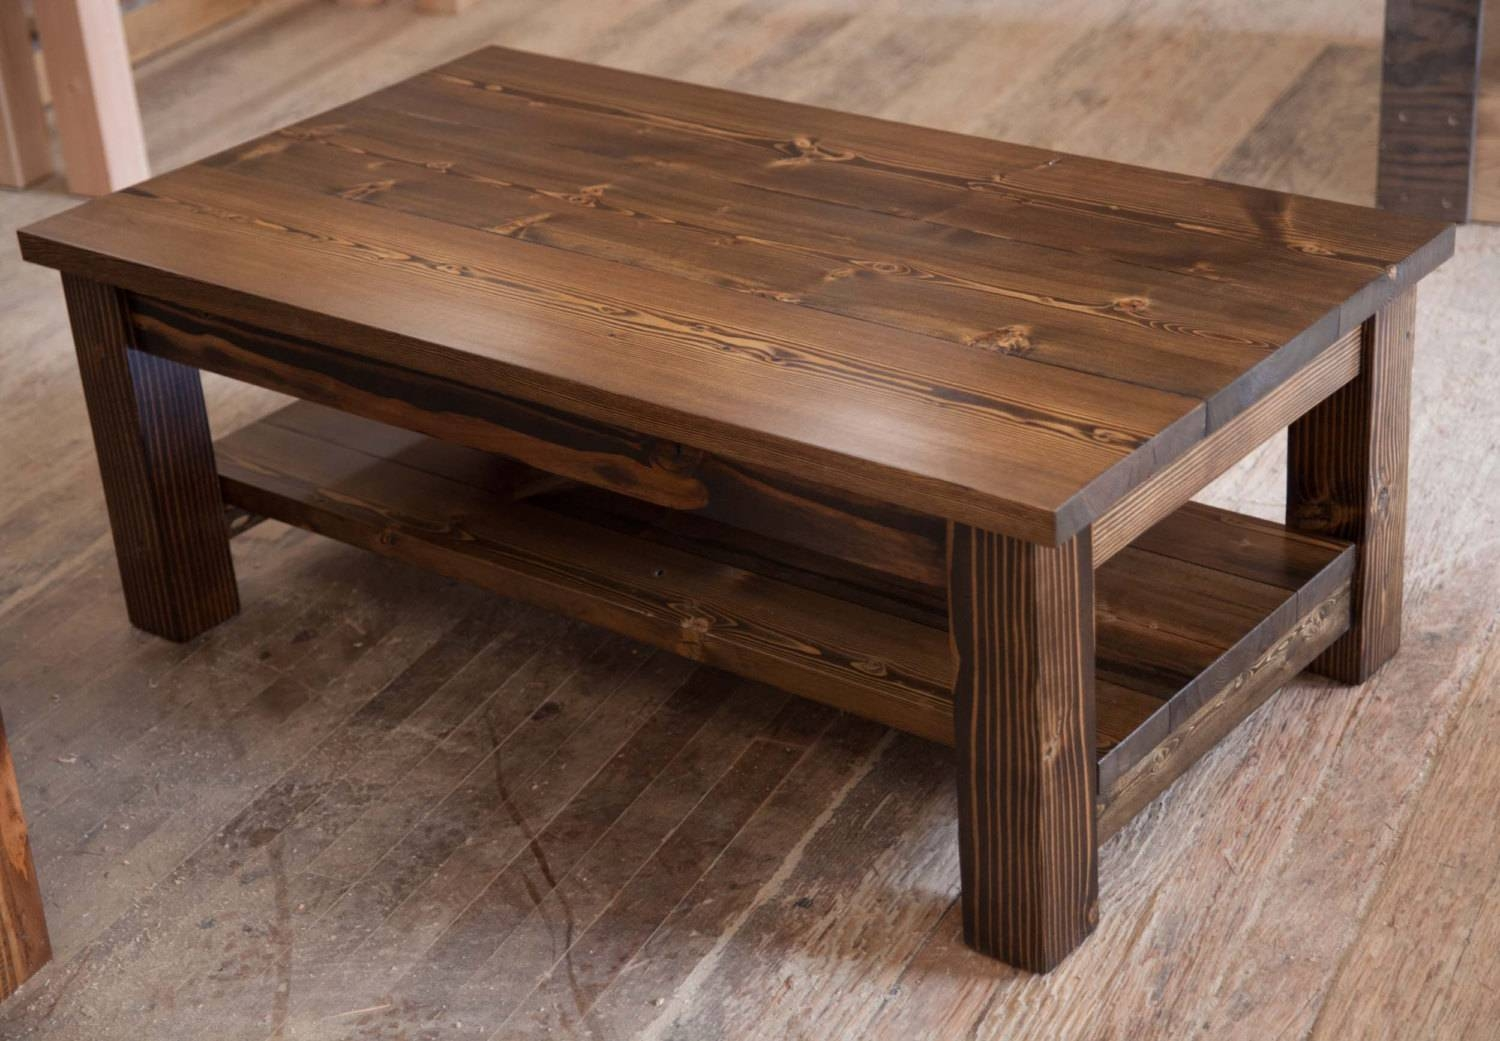 Choosing Rustic Wood Coffee Table | Gazebo Decoration intended for Rustic Wooden Coffee Tables (Image 2 of 15)